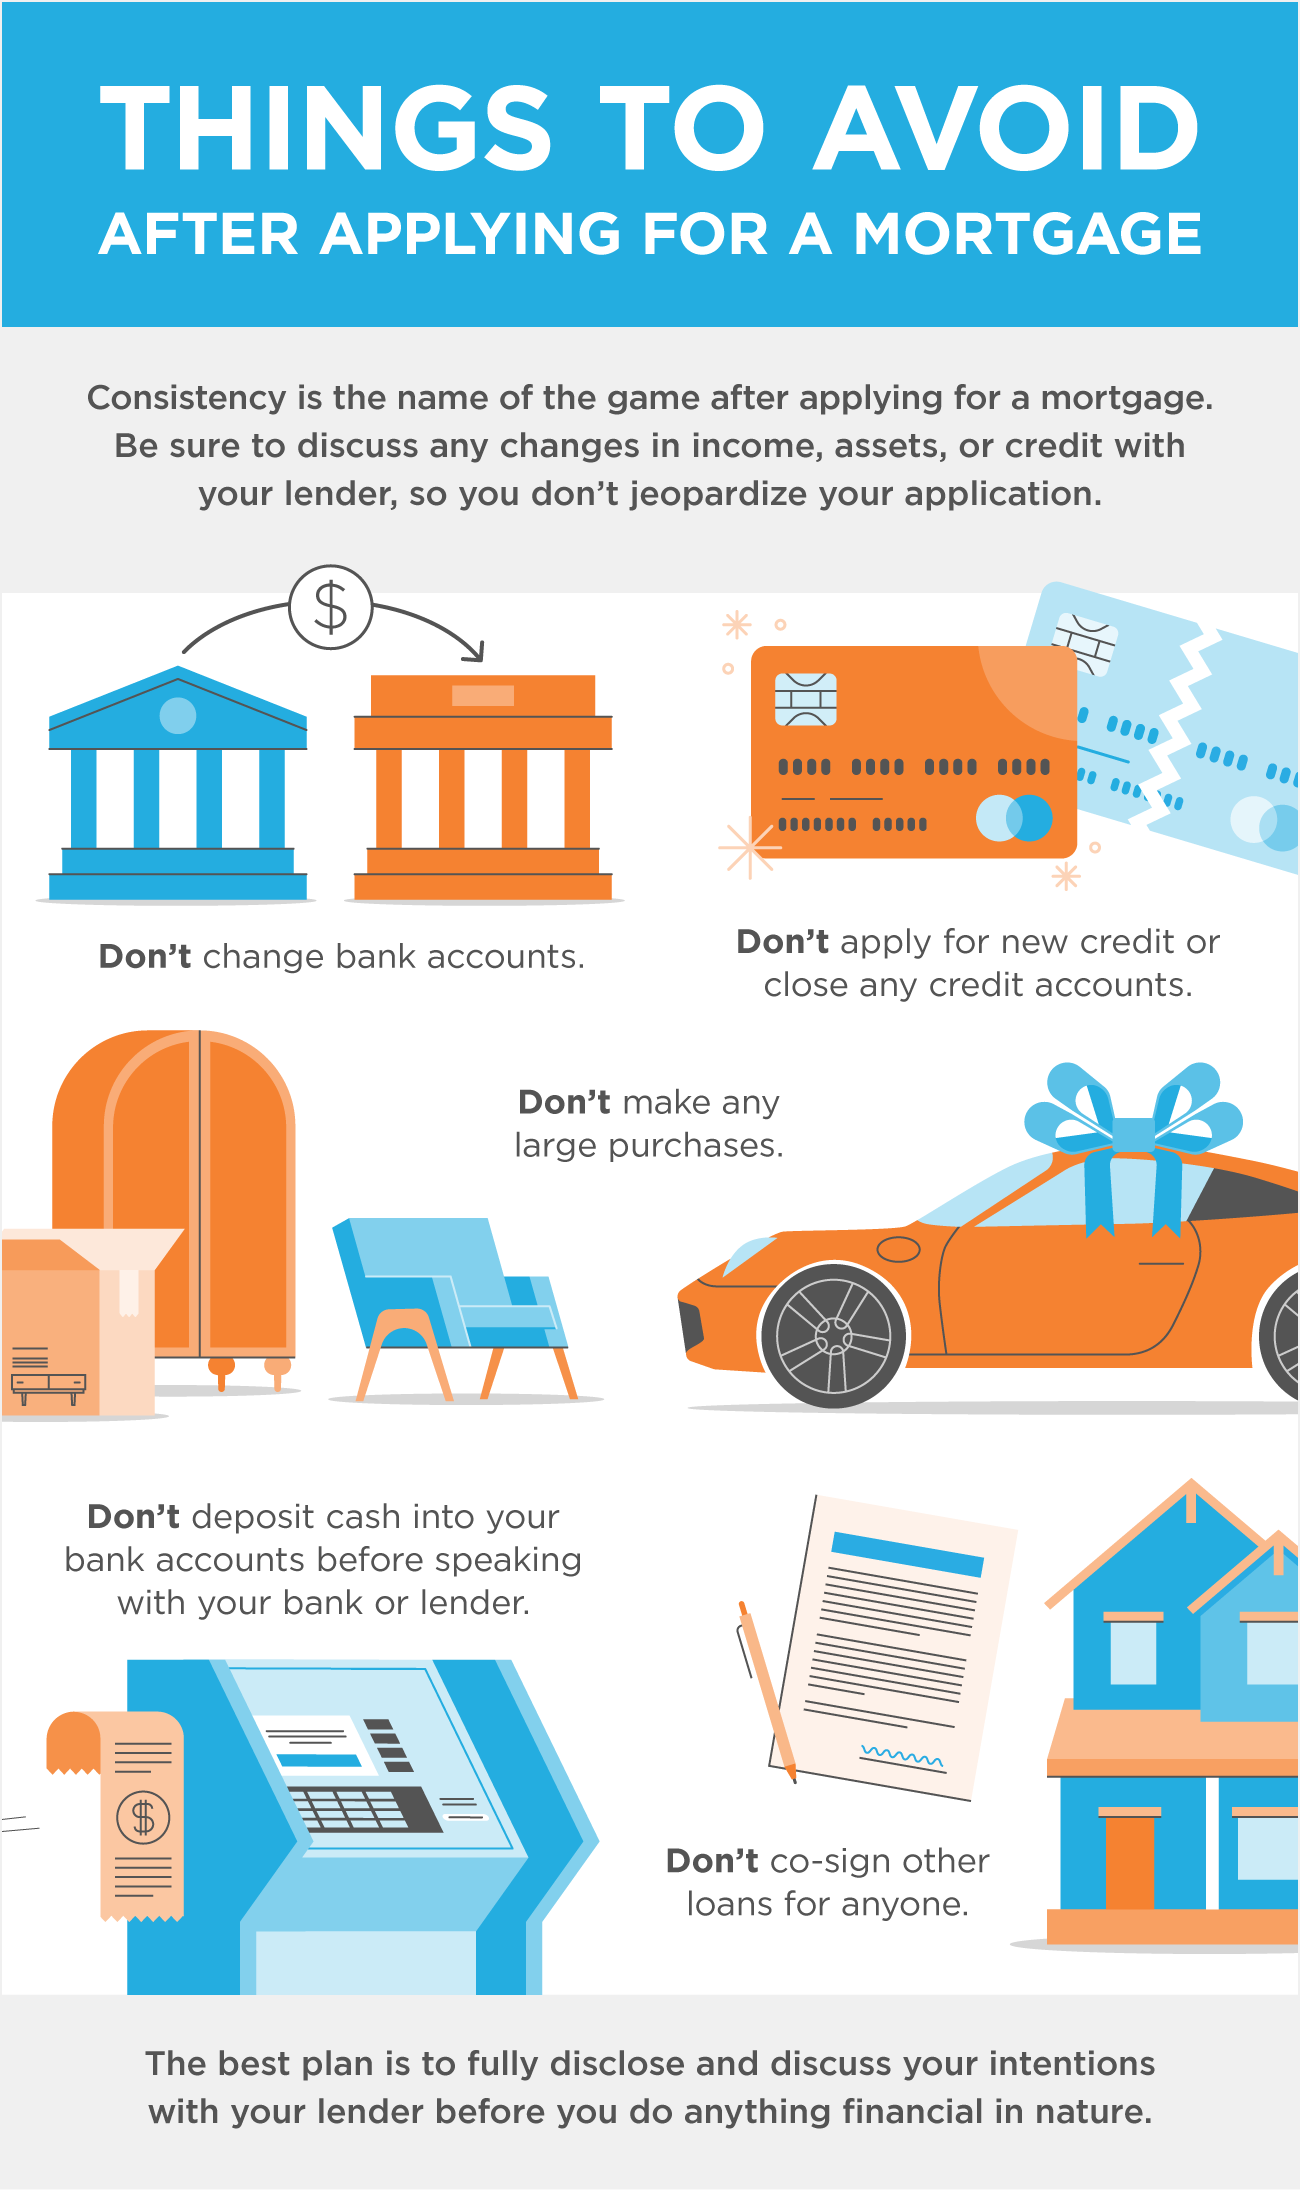 Things to Avoid after Applying for a Mortgagefter Applying for a Mortgage